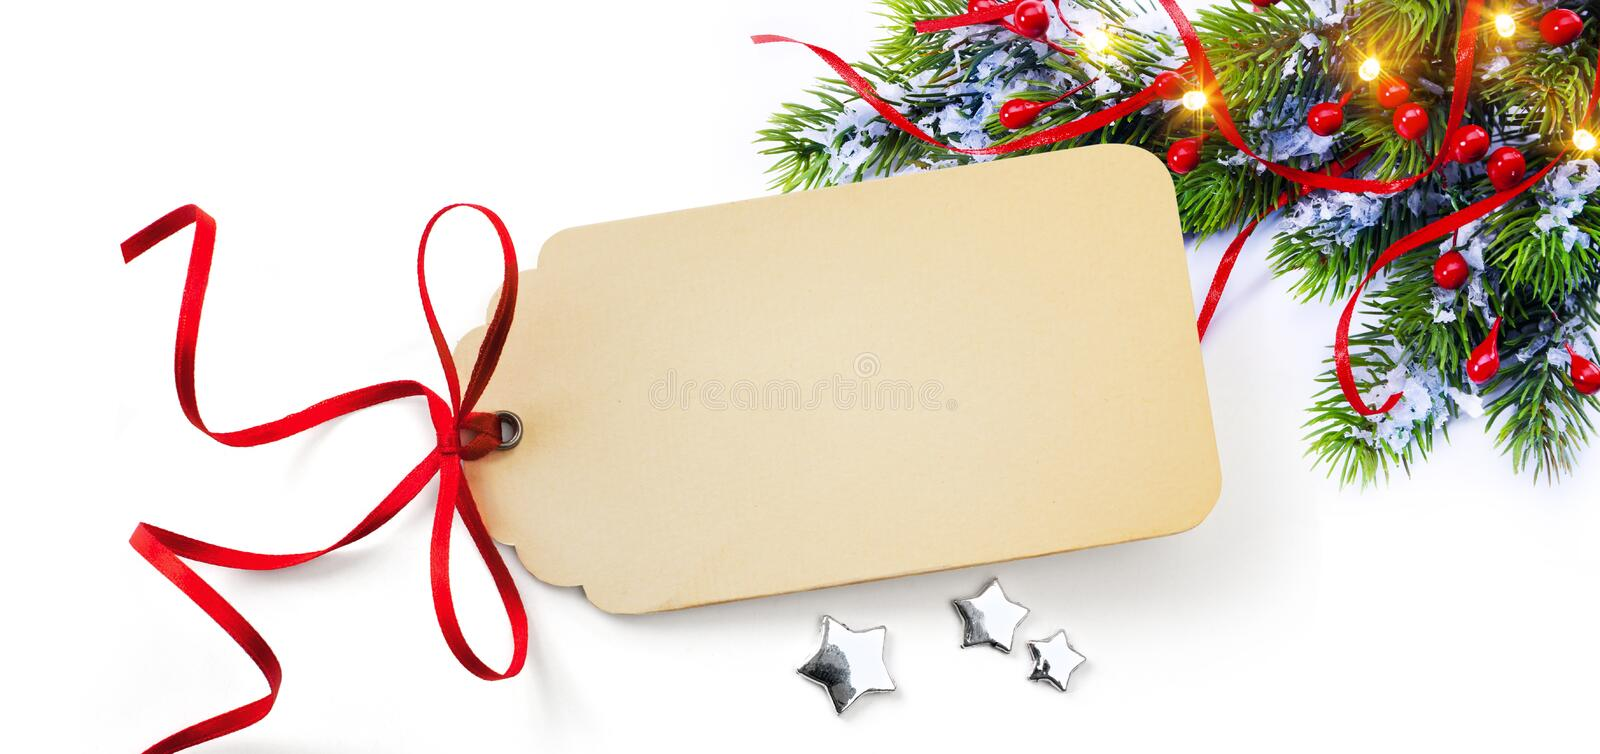 Christmas Season Gift Tag on holidays background. Merry Christmas card with Season Gift Tag on holidays background royalty free stock images